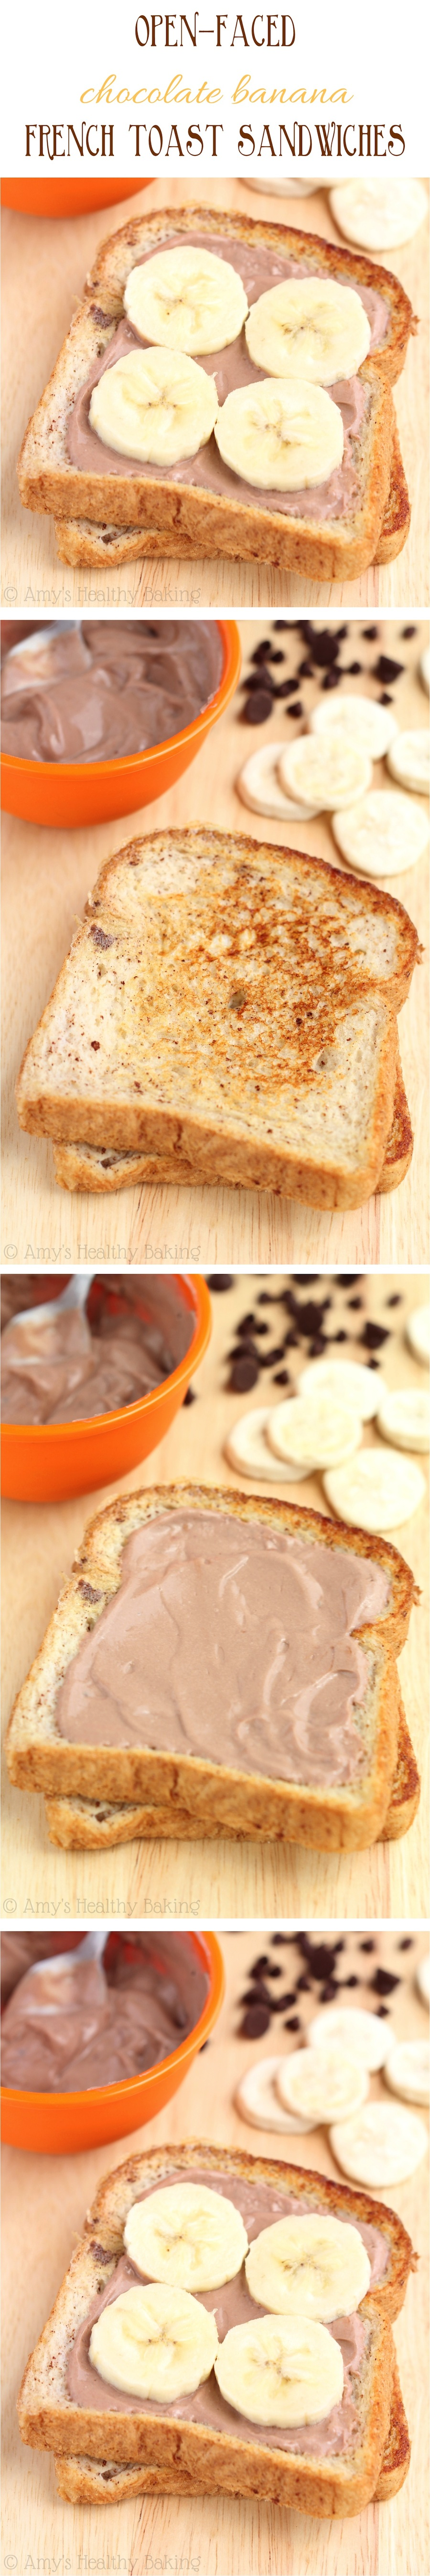 Open-Faced Chocolate Banana French Toast Sandwiches -- clean-eating & so easy. Even my breakfast-hater loved this recipe!